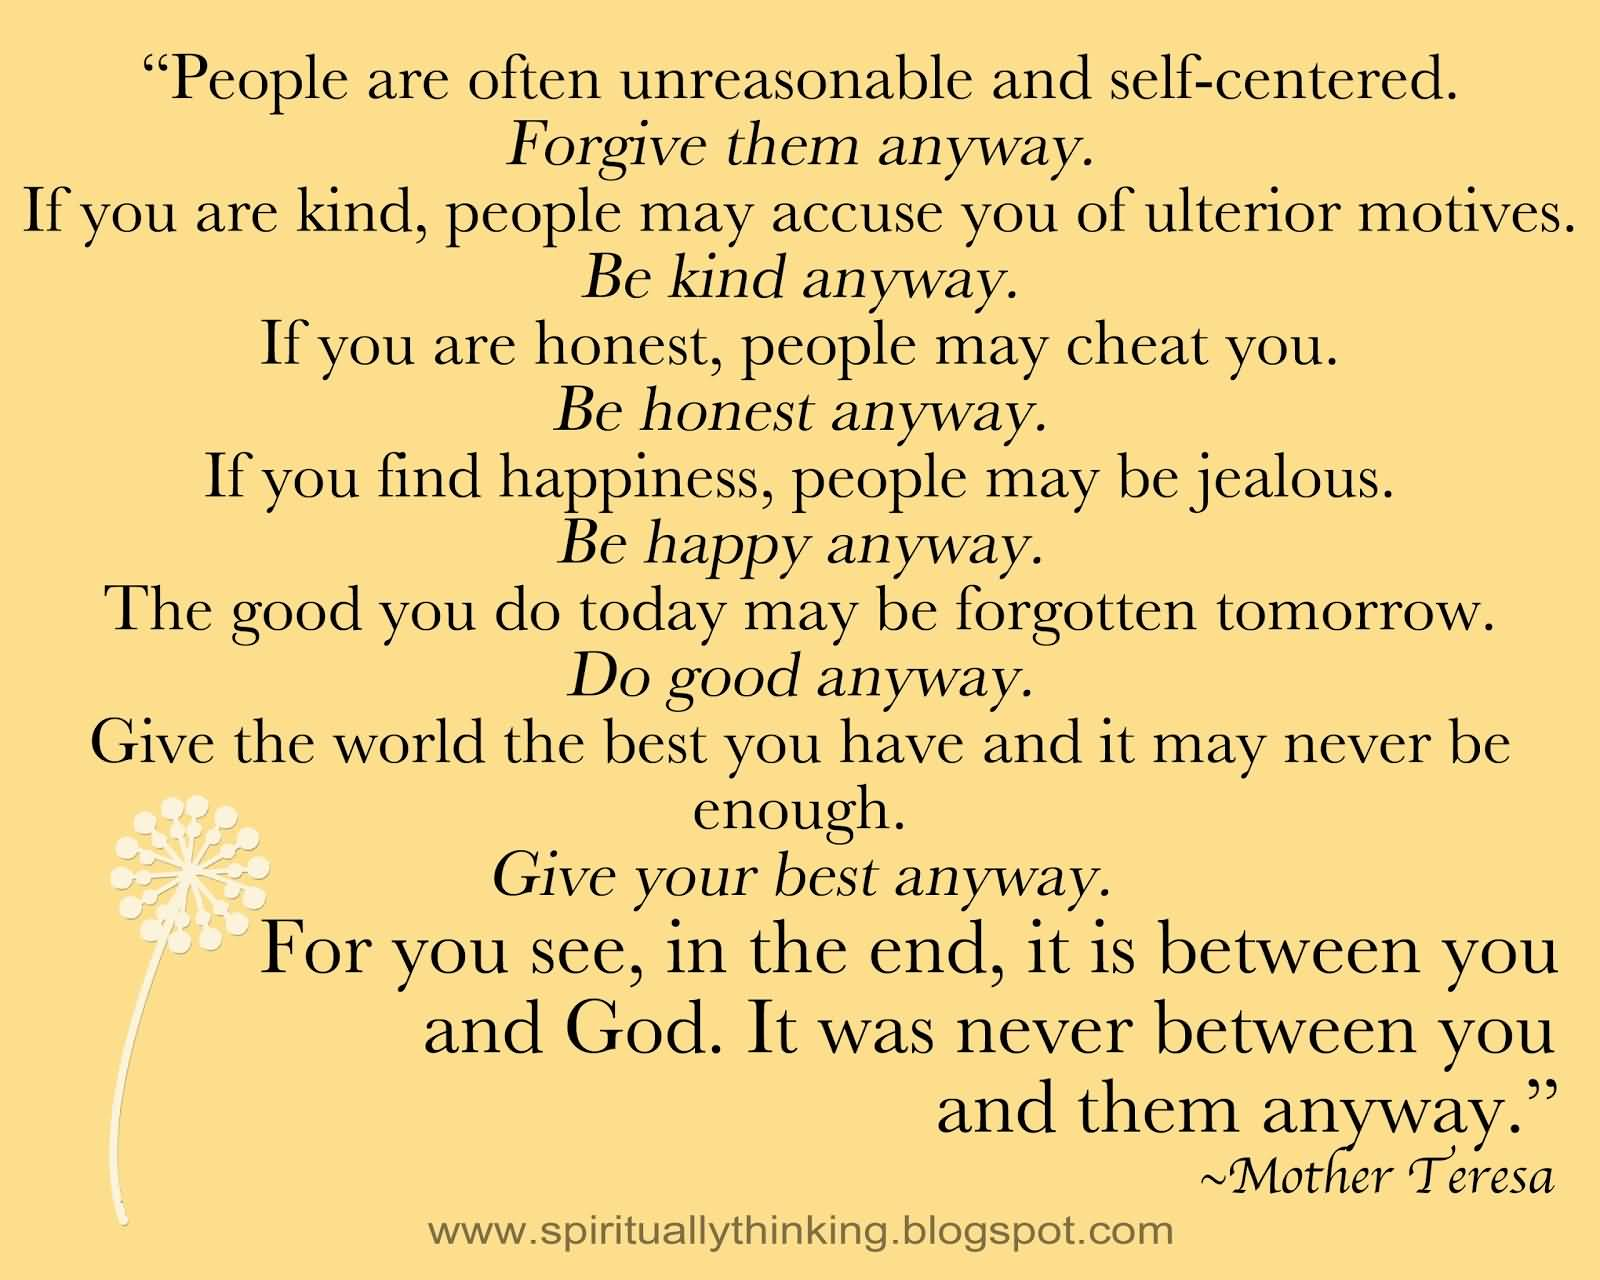 Mother Teresa Quotes Love Them Anyway 02